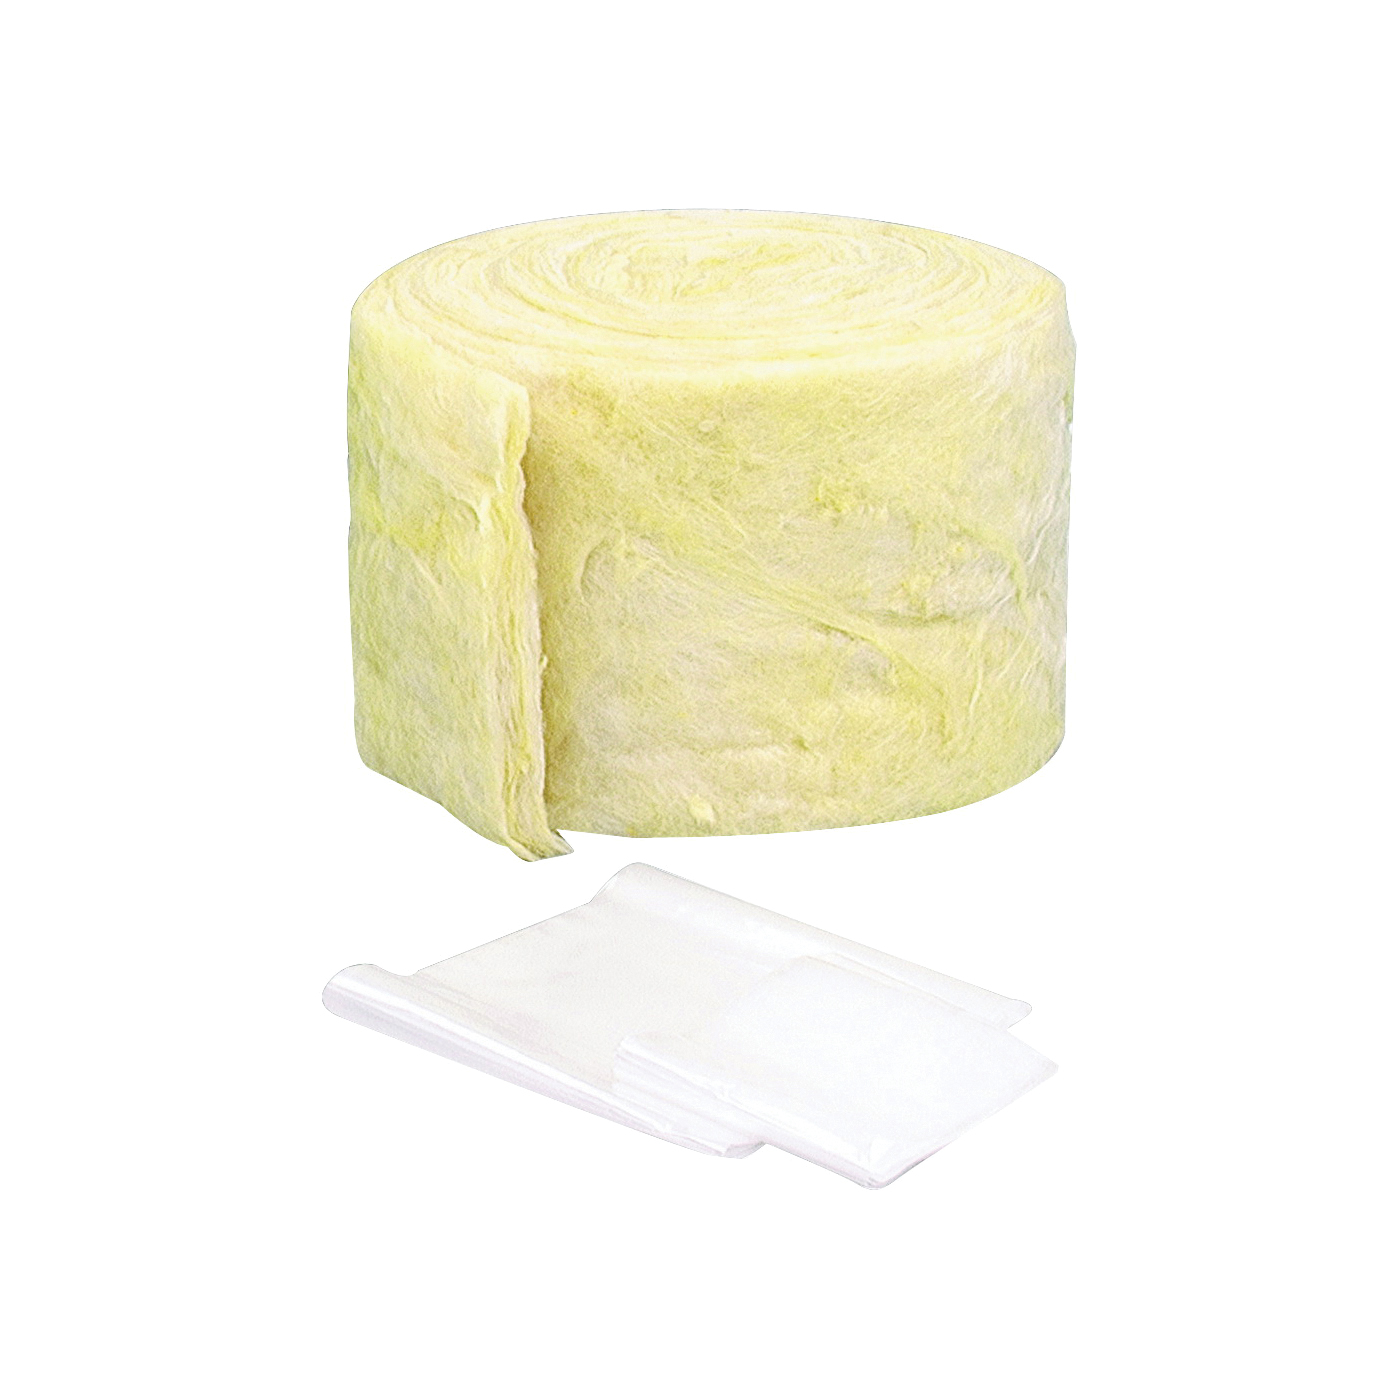 Picture of M-D 04937 Pipe Insulation Wrap, 25 ft L, 1/2 in Thick, Fiberglass, Yellow